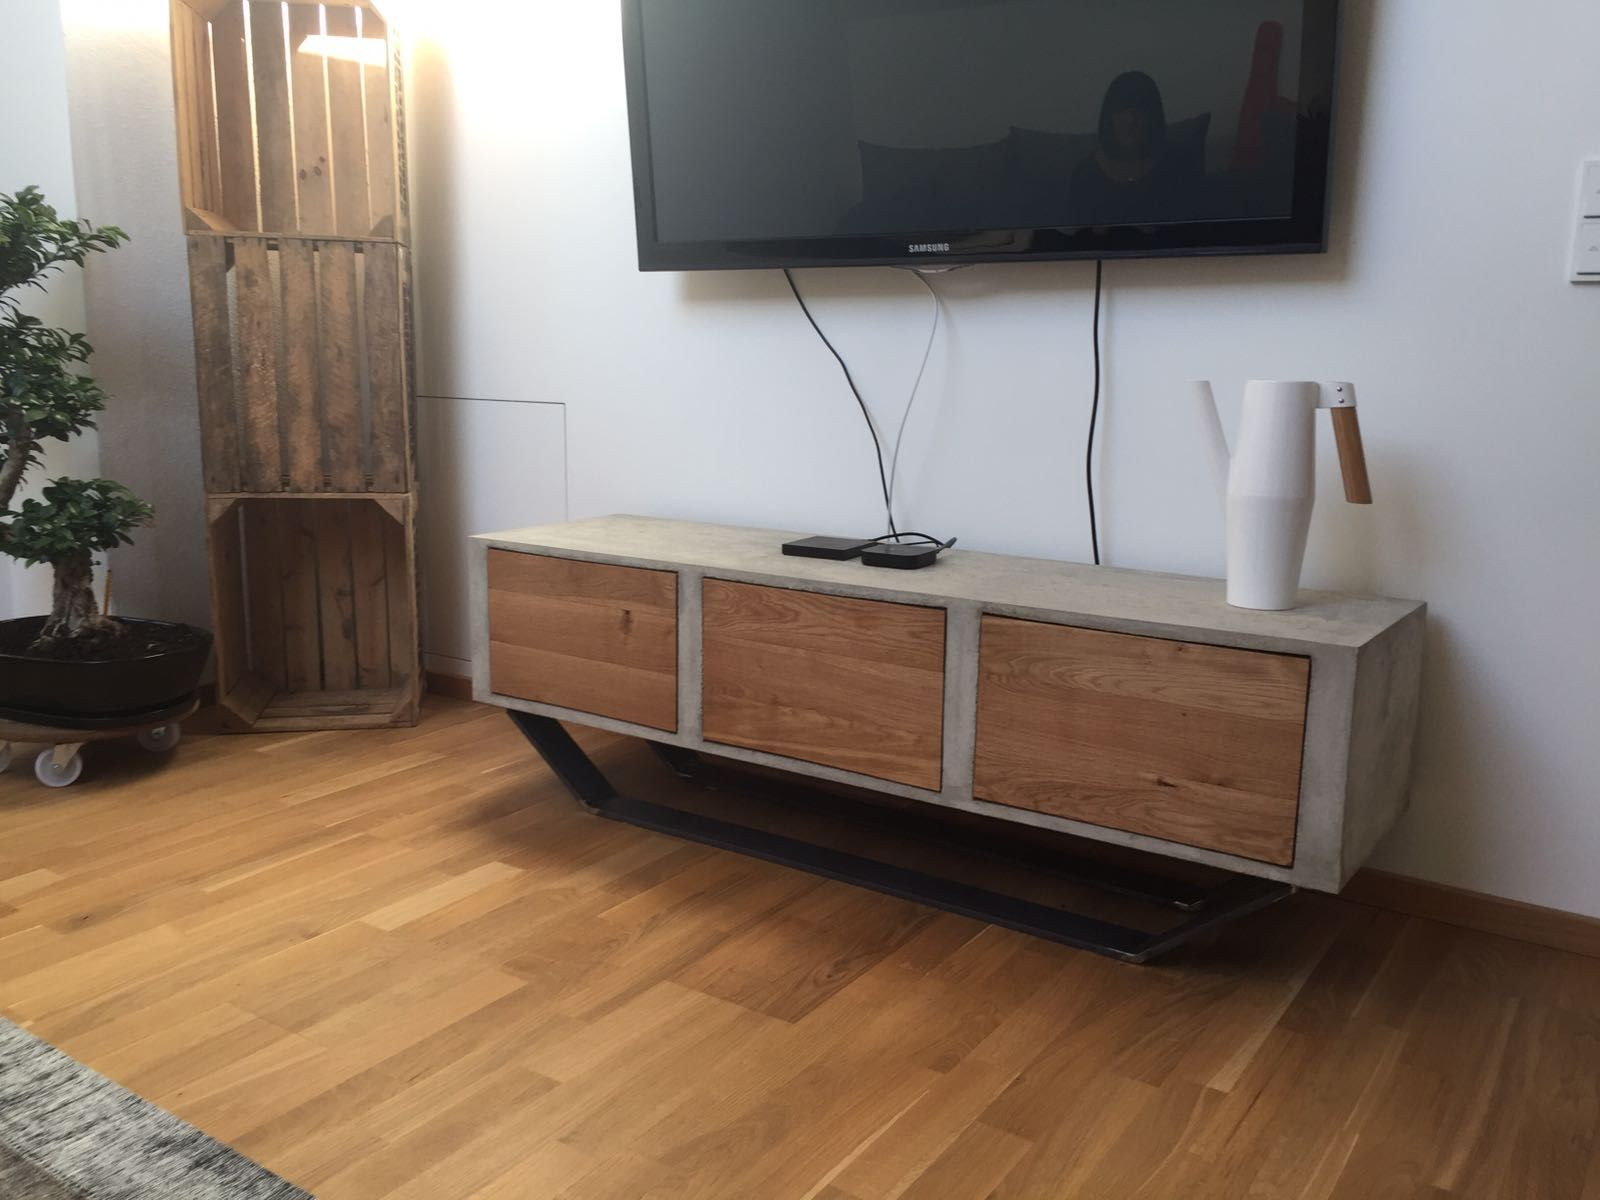 Tv Sideboard Holz Tv Sideboard Beton Holz Beton Design Tv Sideboard